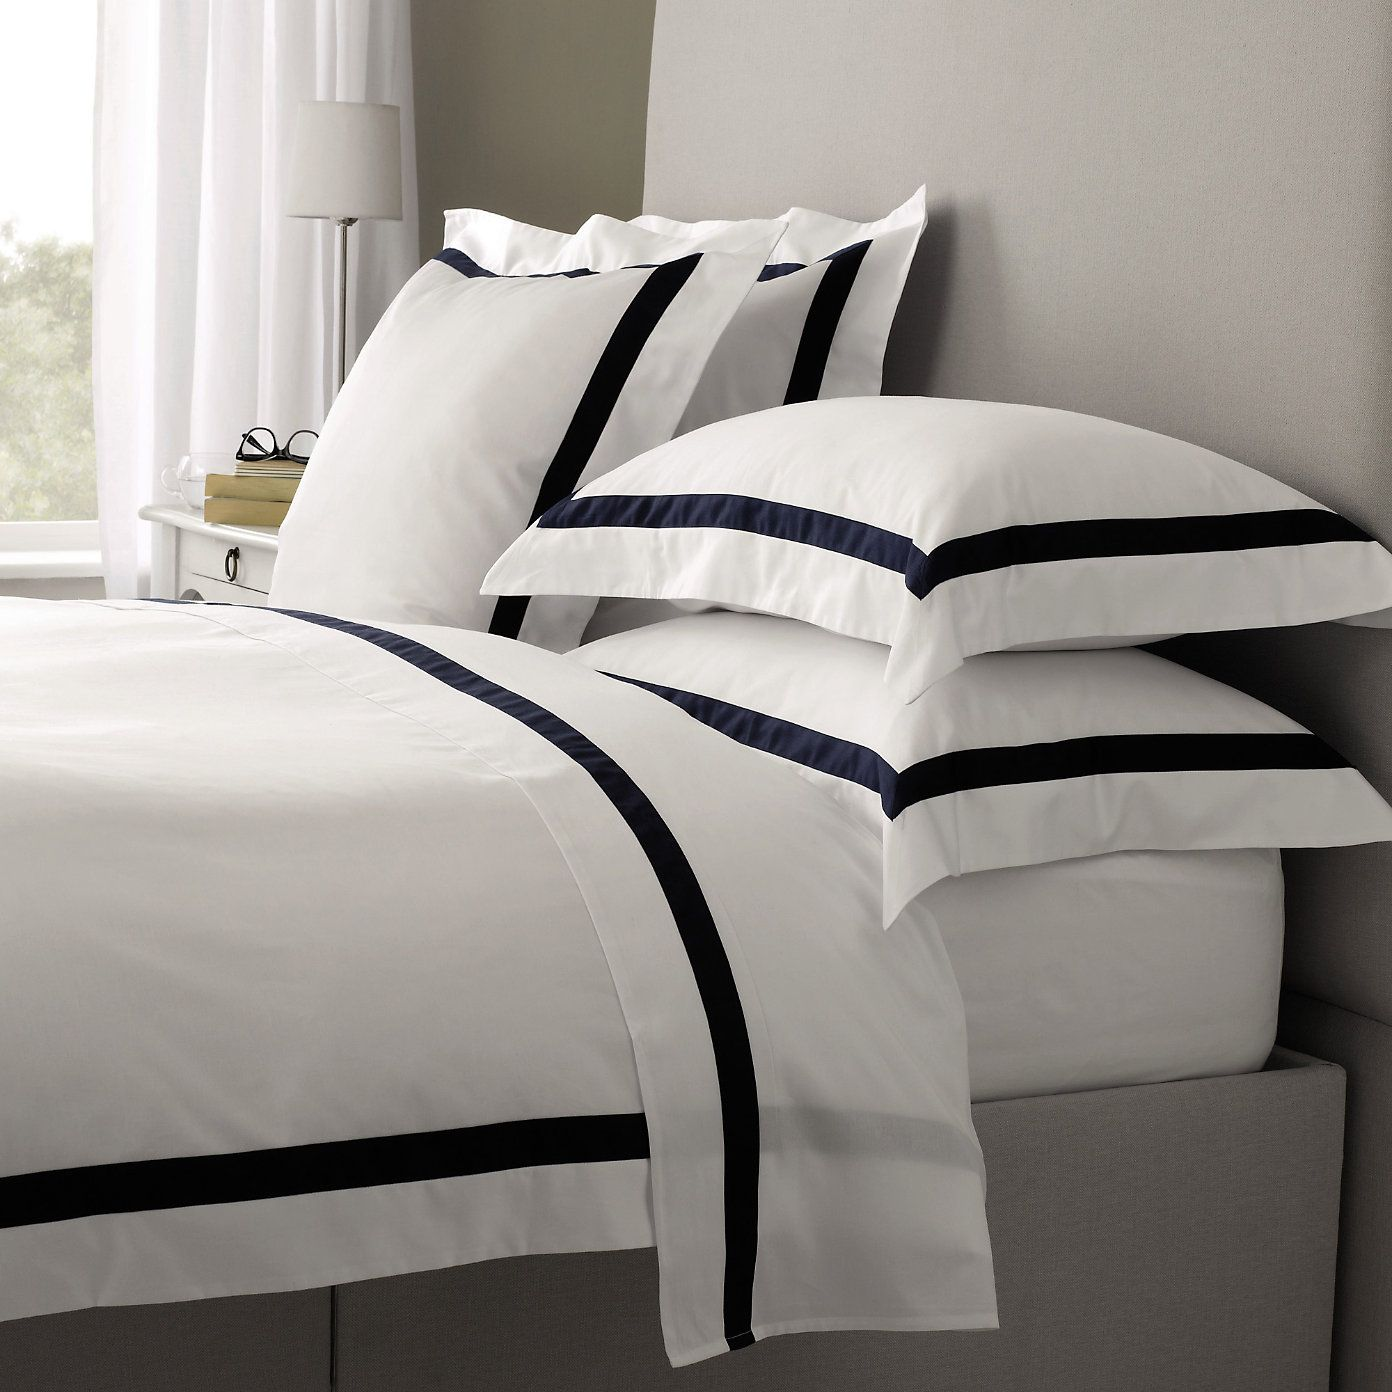 Bed Linen Great Graphic Design With